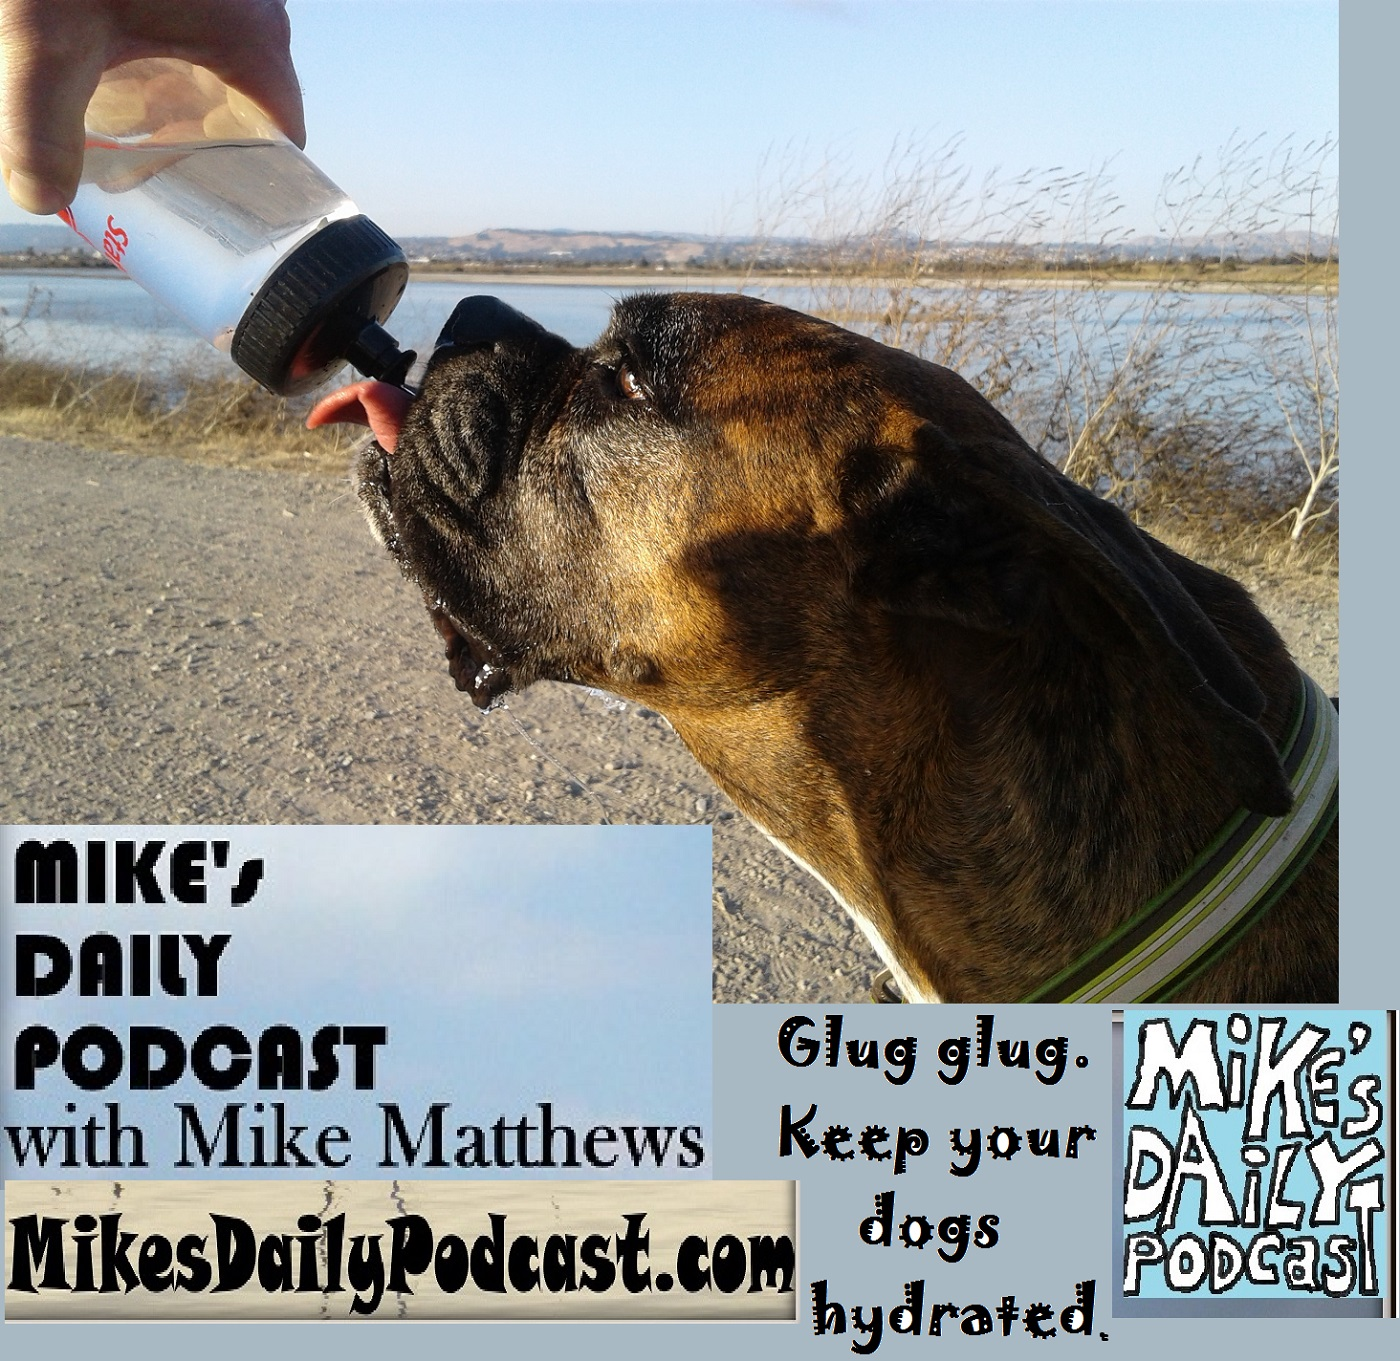 MIKEs DAILY PODCAST 1170 Hayward Regional Shoreline boxer drinks